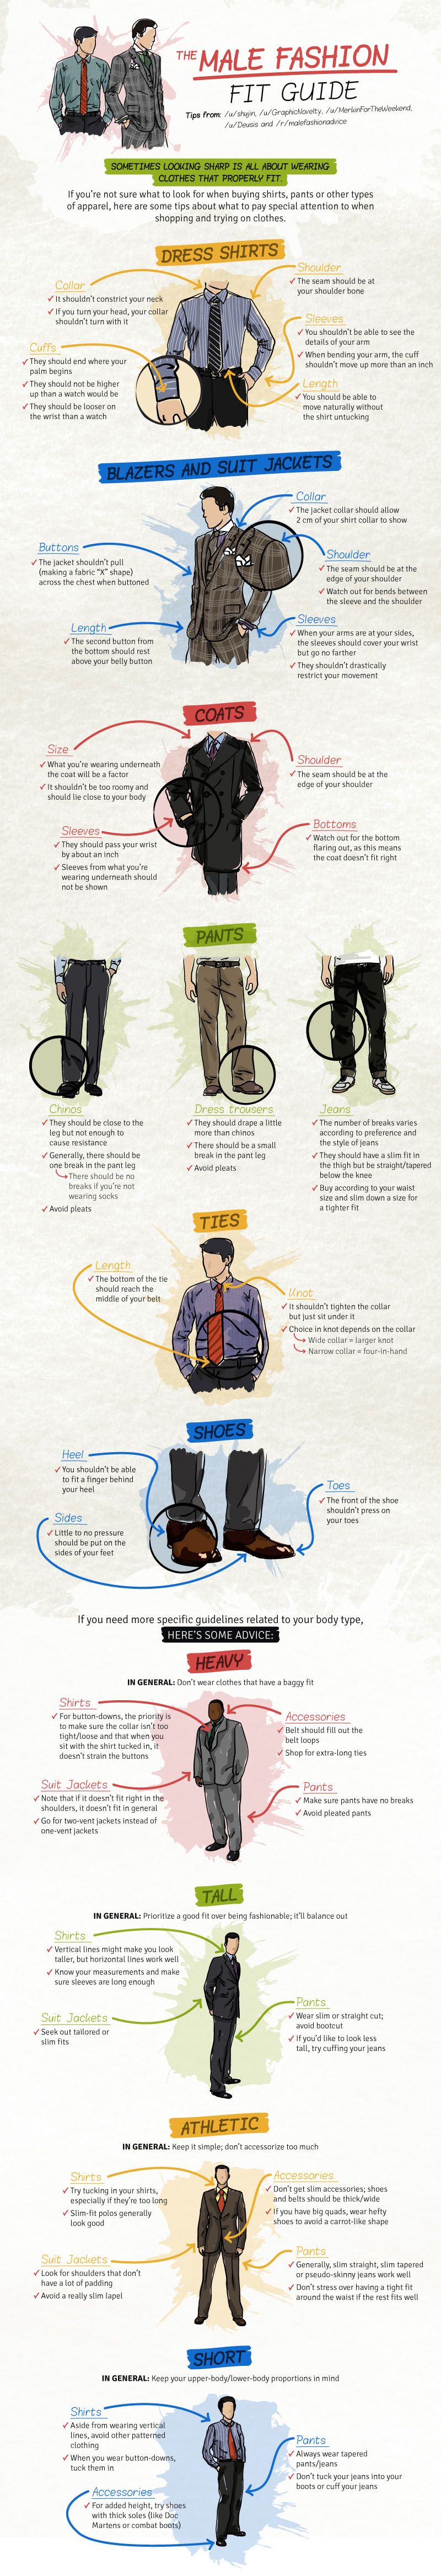 mens-fasion-infographic-buzzfeed